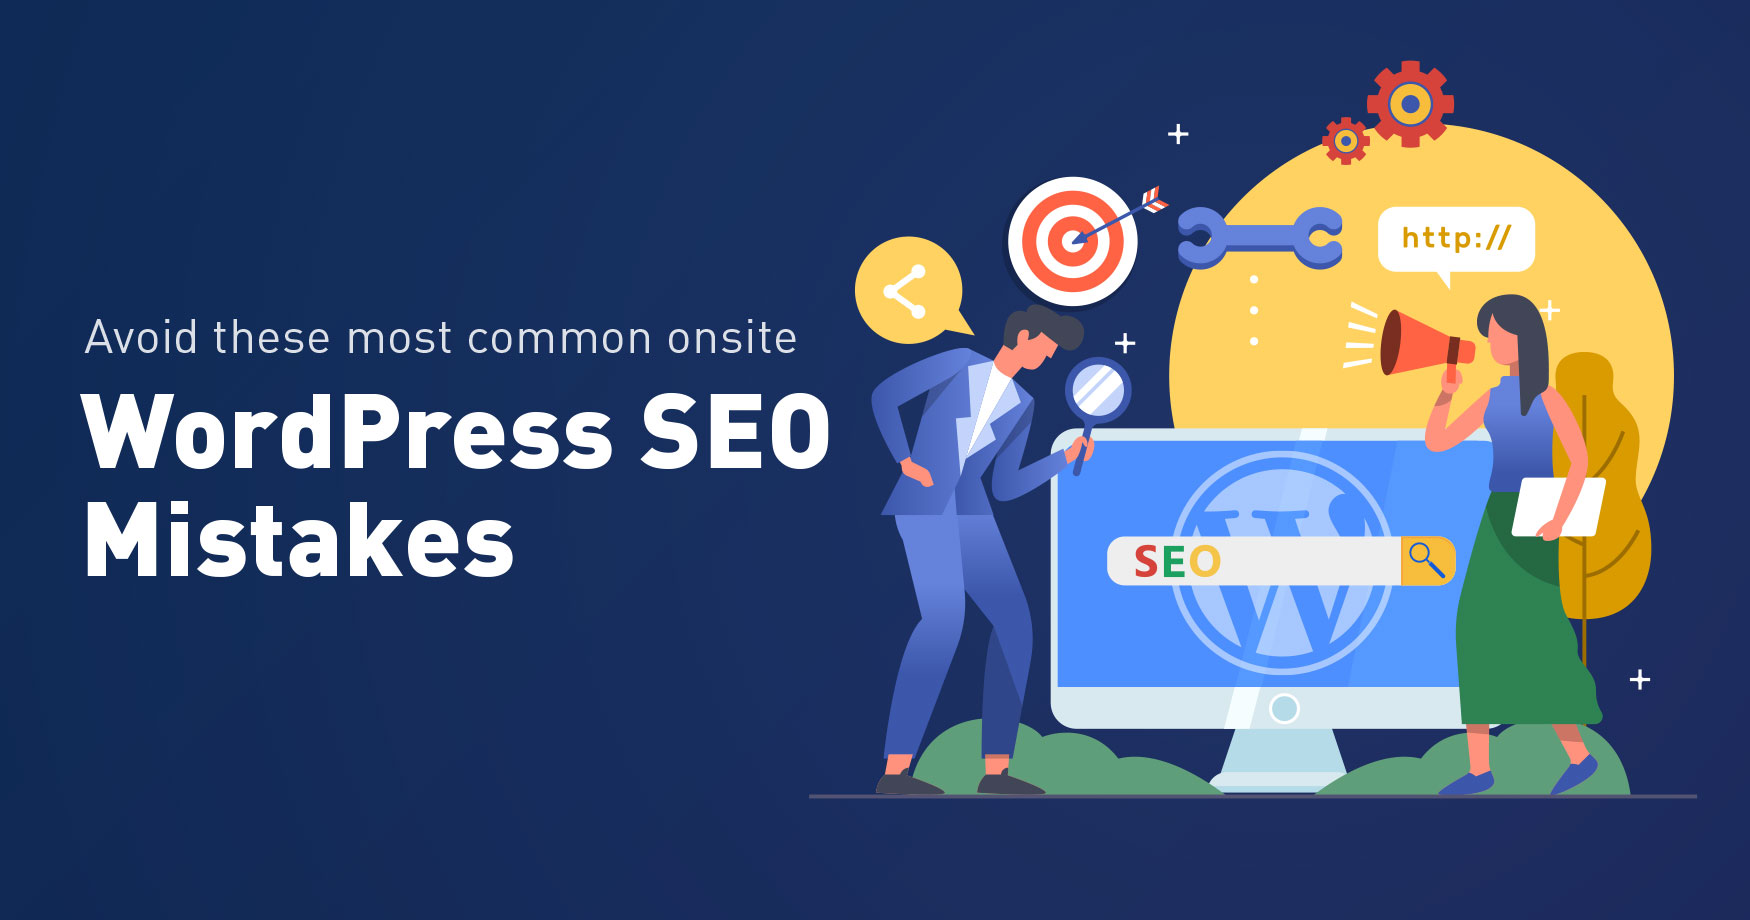 Avoid these Most Common Onsite WordPress SEO Mistakes